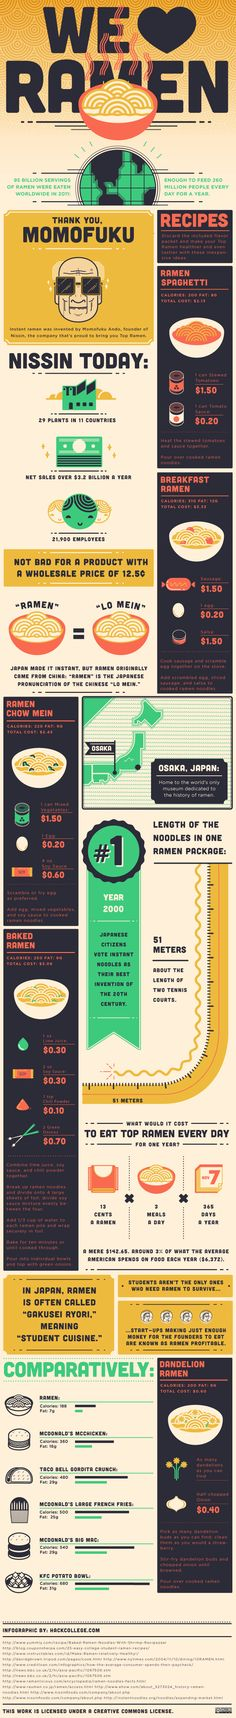 Everything you ever wanted to know about Ramen noodles: Infographic                                                        College students fascinated with the incredible, edible noodles share the history, the finances — cheap! — and even a few healthy recipes